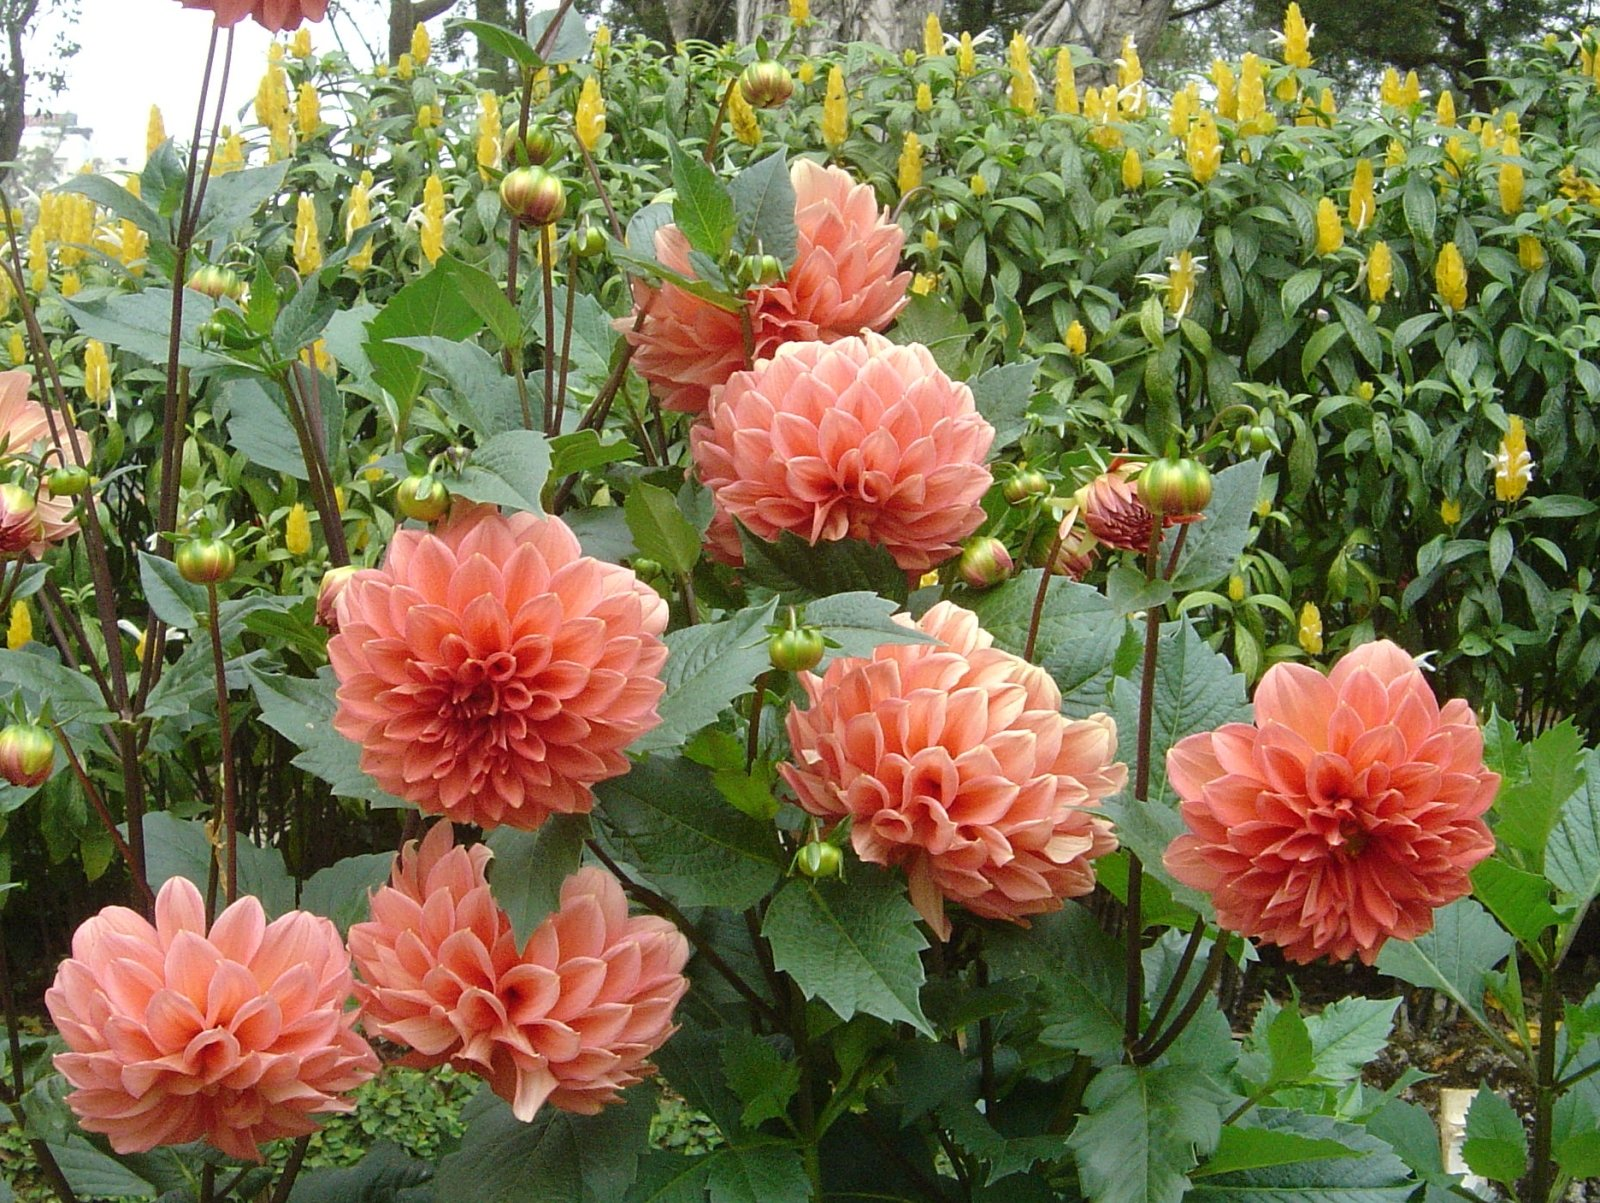 The pride of your garden dahlia sachi shiksha the spiritual the pride of your garden dahlia the vanity of the garden and the king of winter dahlia is at the pinnacle of fame because of its unmatchable beauty izmirmasajfo